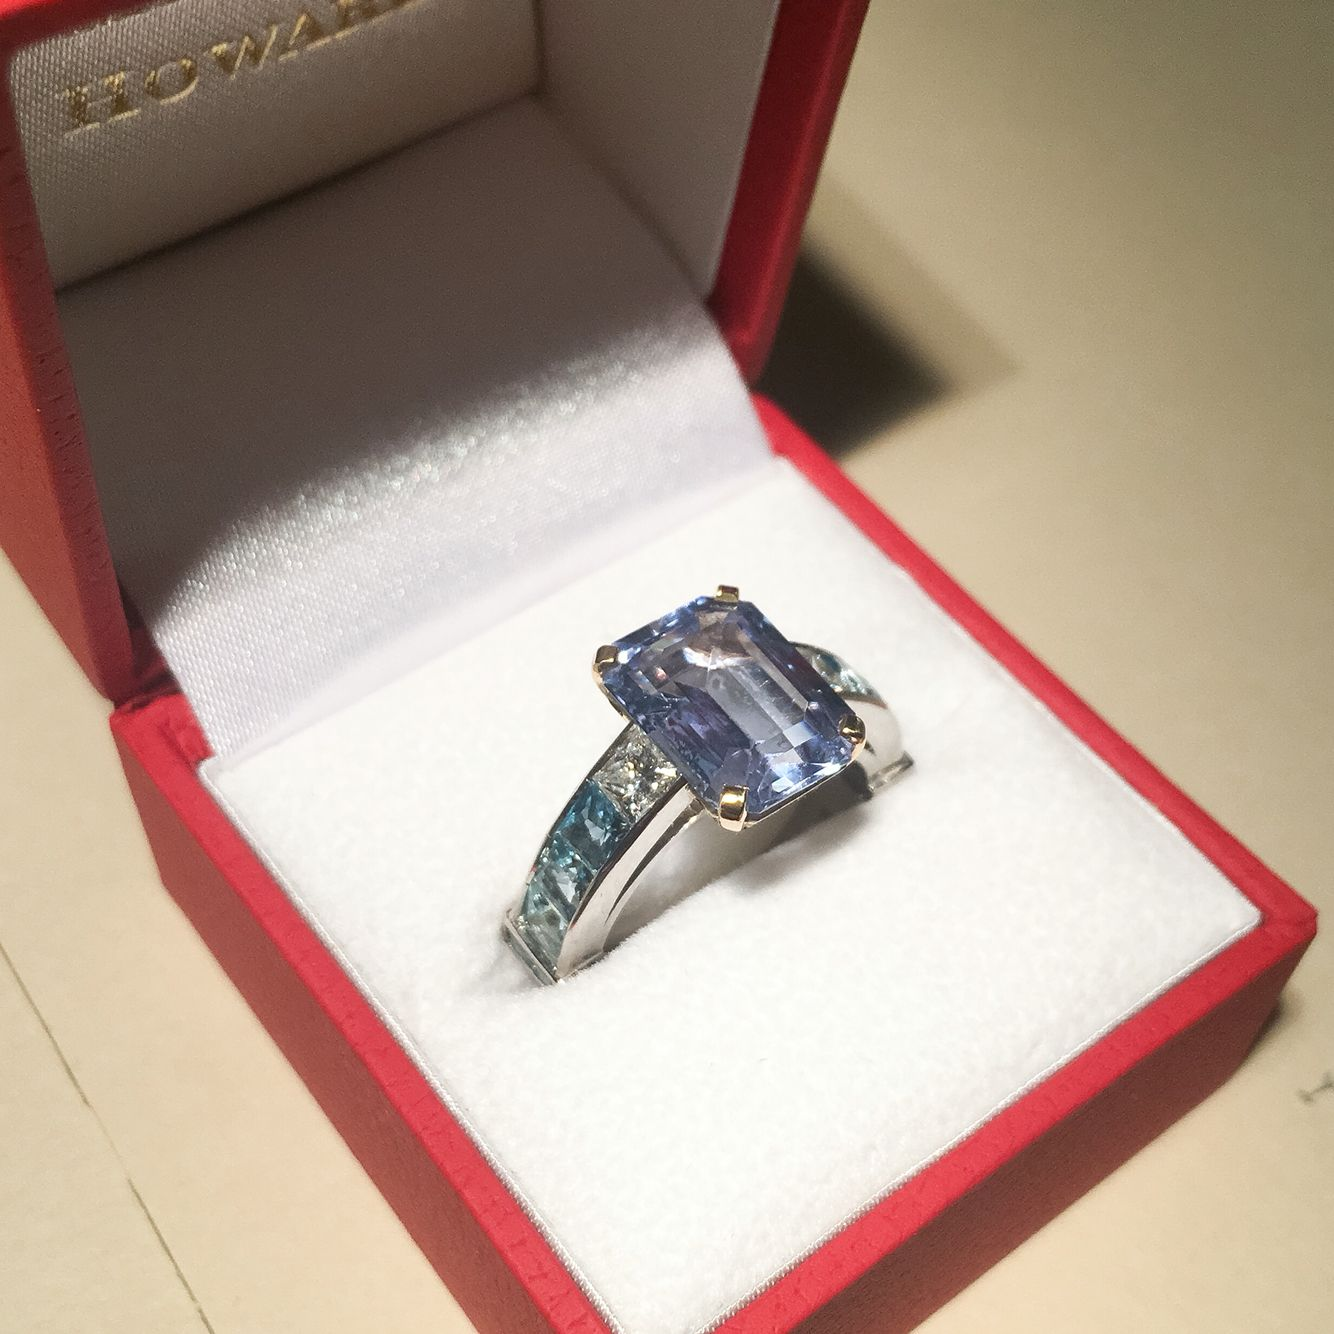 Bespoke aquamarine and diamond ring, made by resetting the client's own stone.